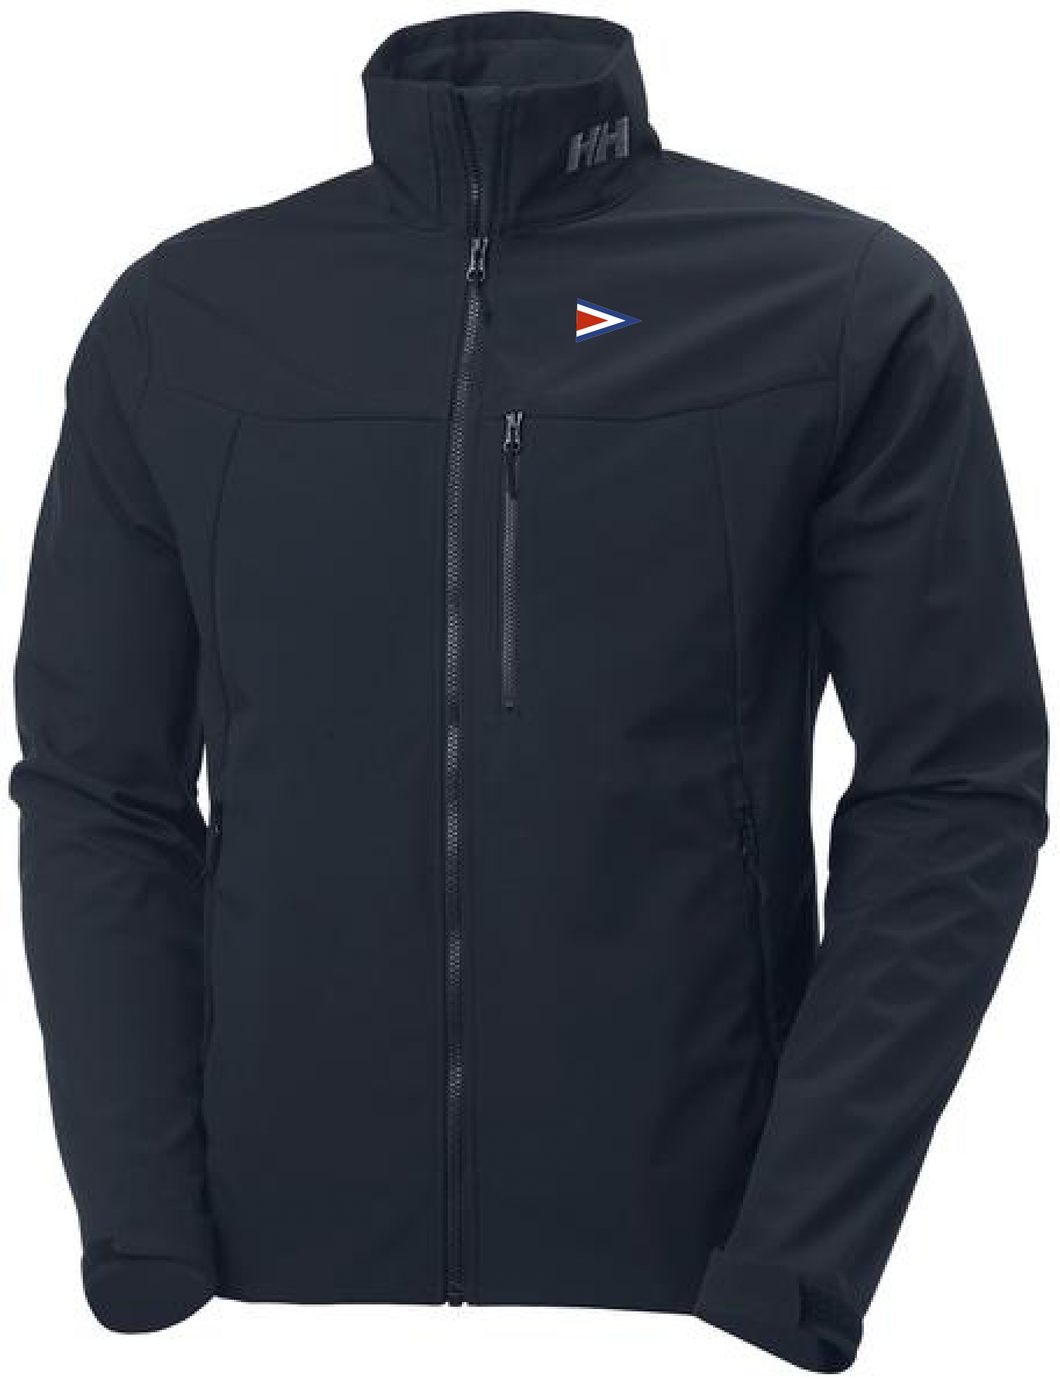 Helly Hansen Men's Paramount Softshell Jacket